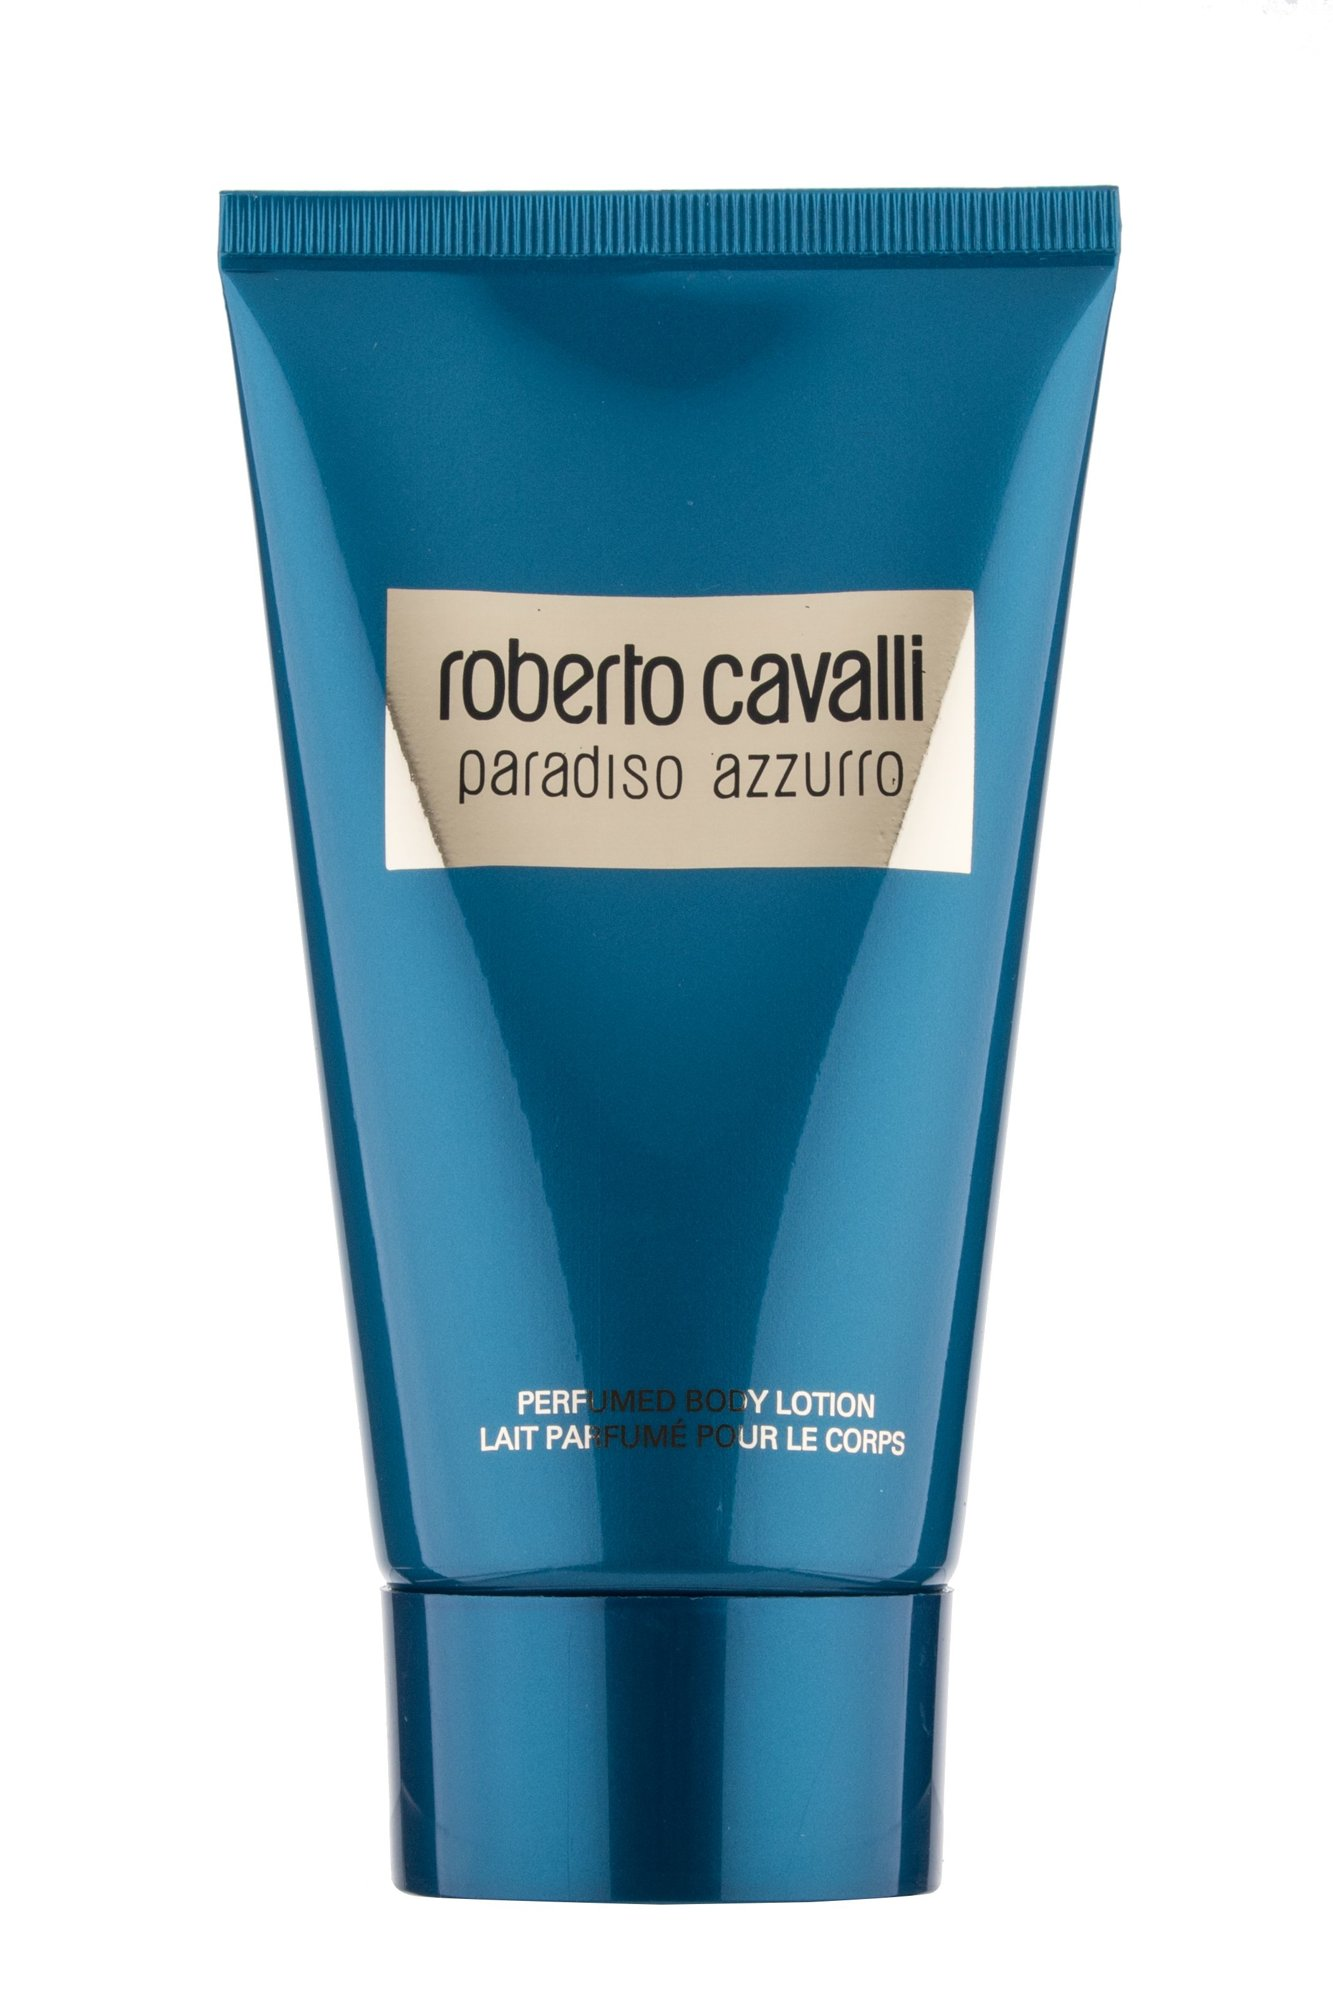 Roberto Cavalli Paradiso Azzurro Body lotion 150ml